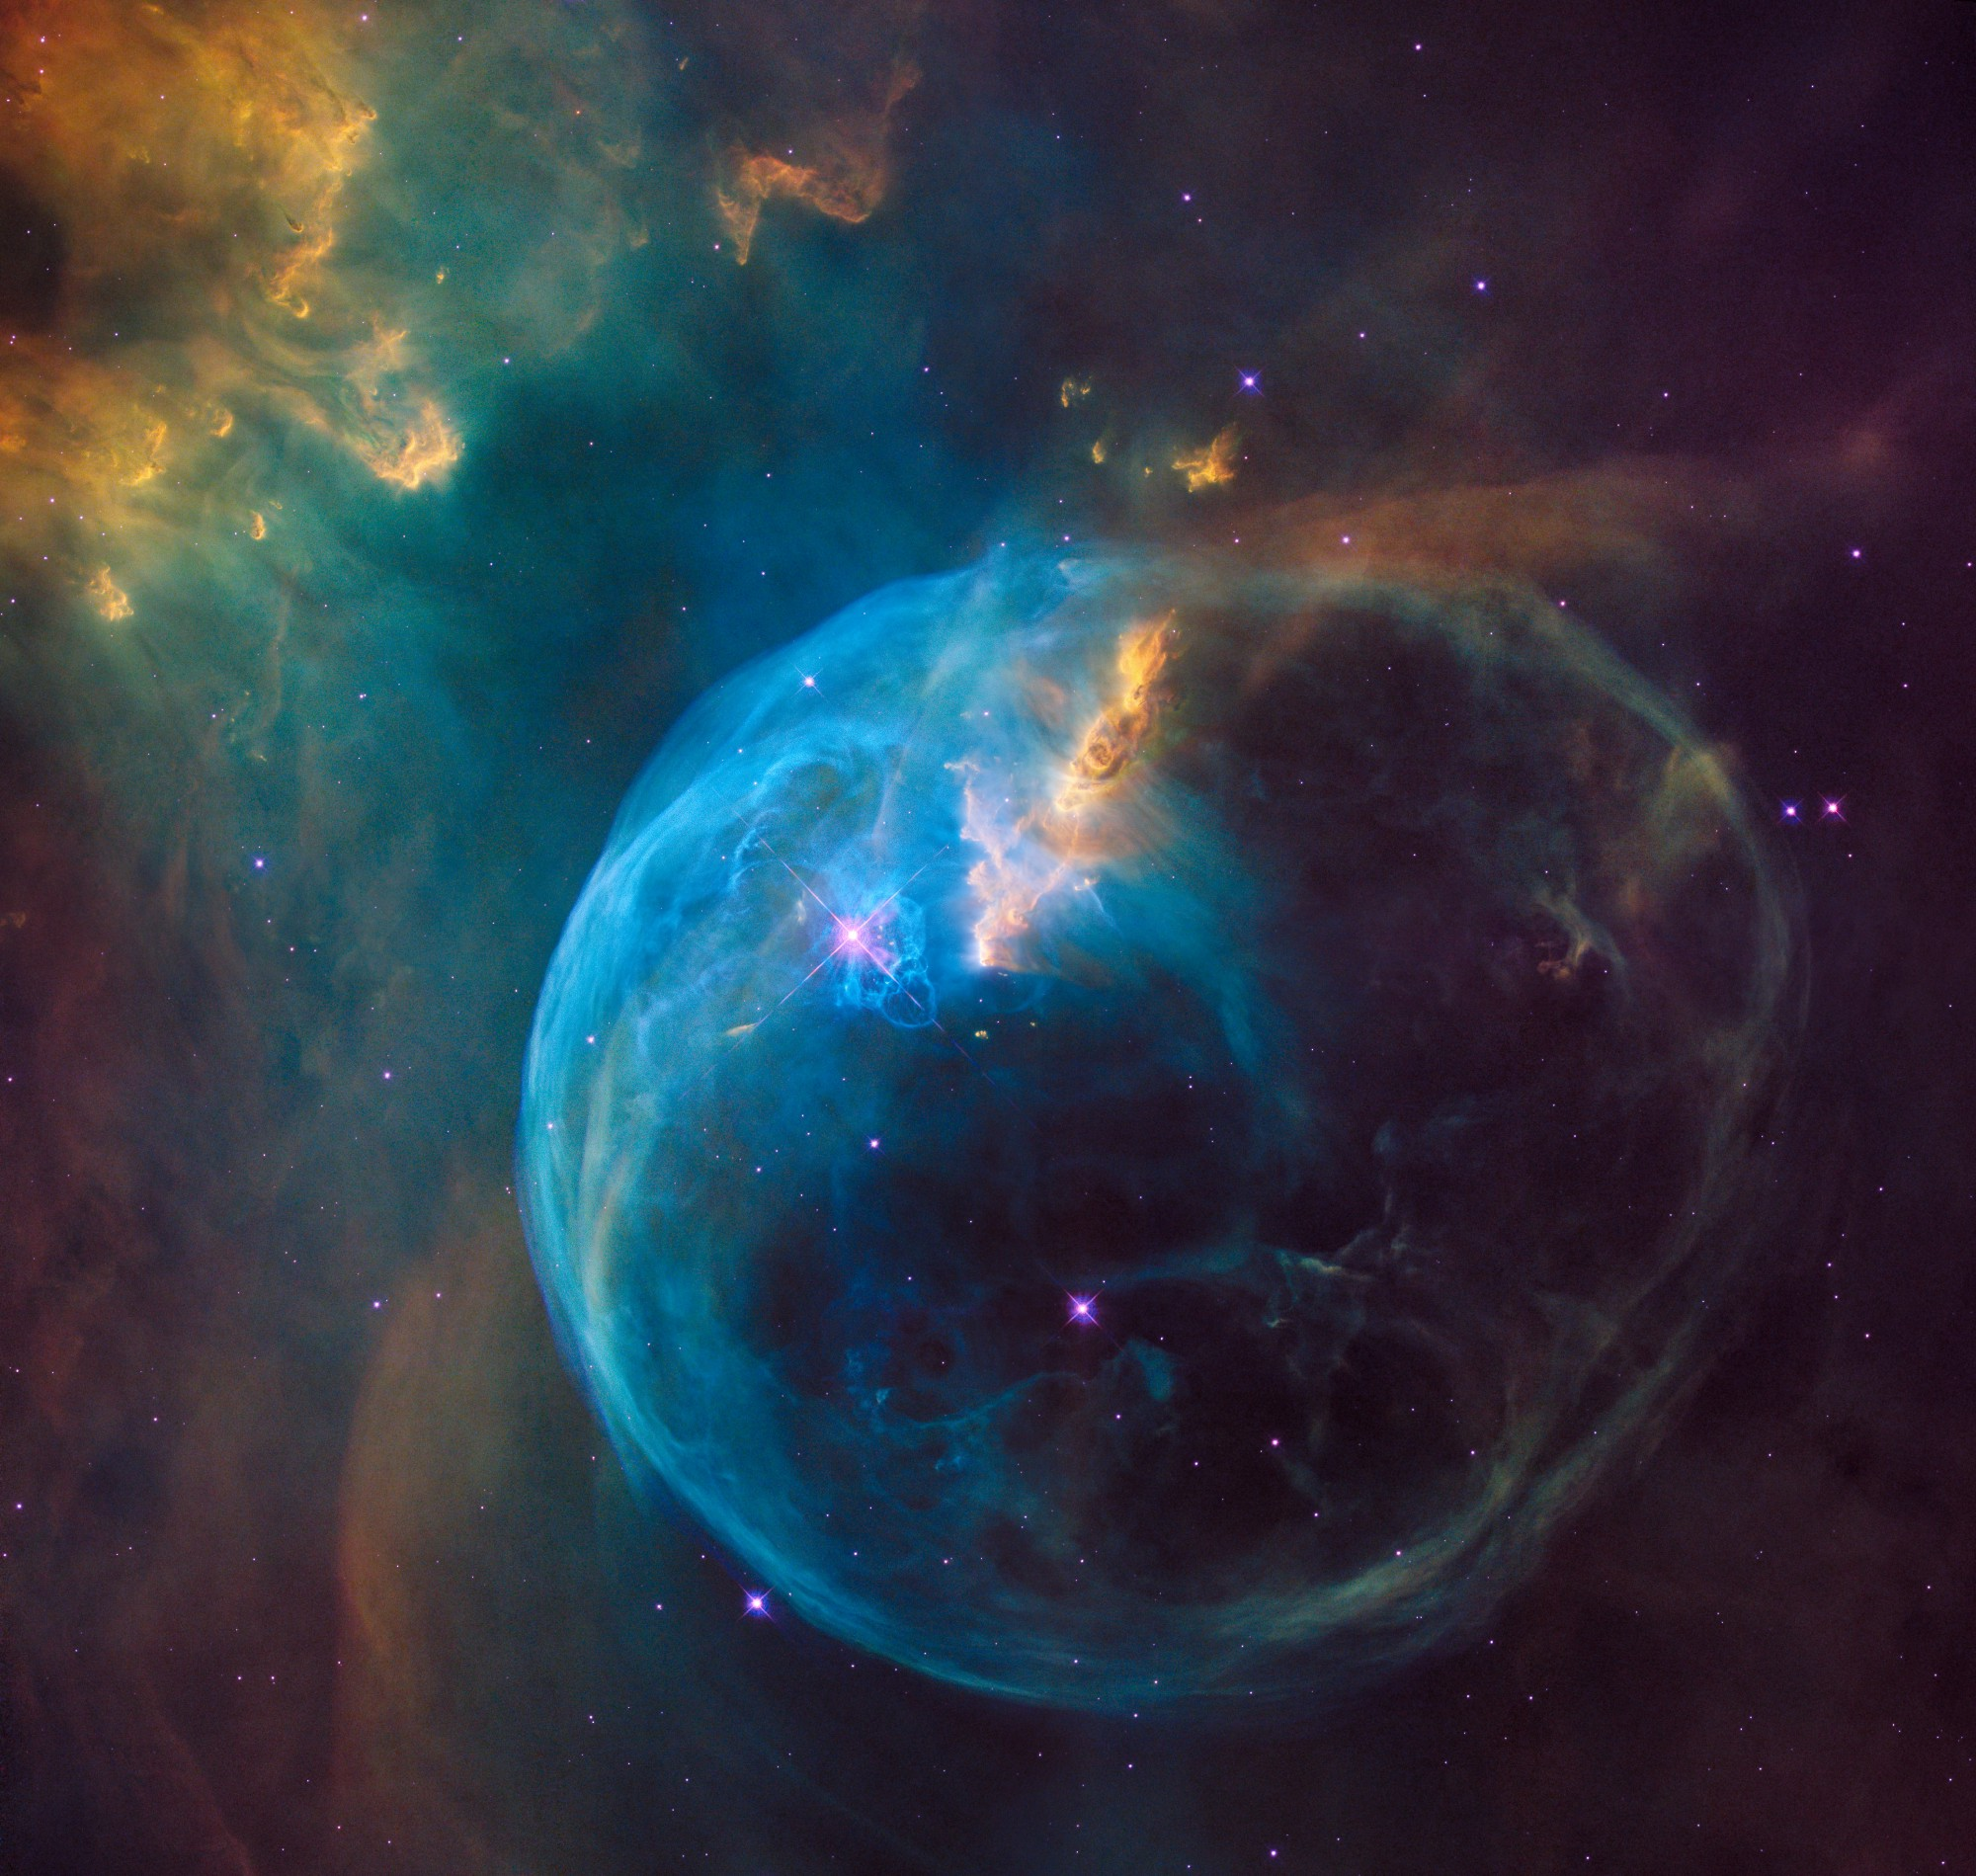 Image of space from NASA